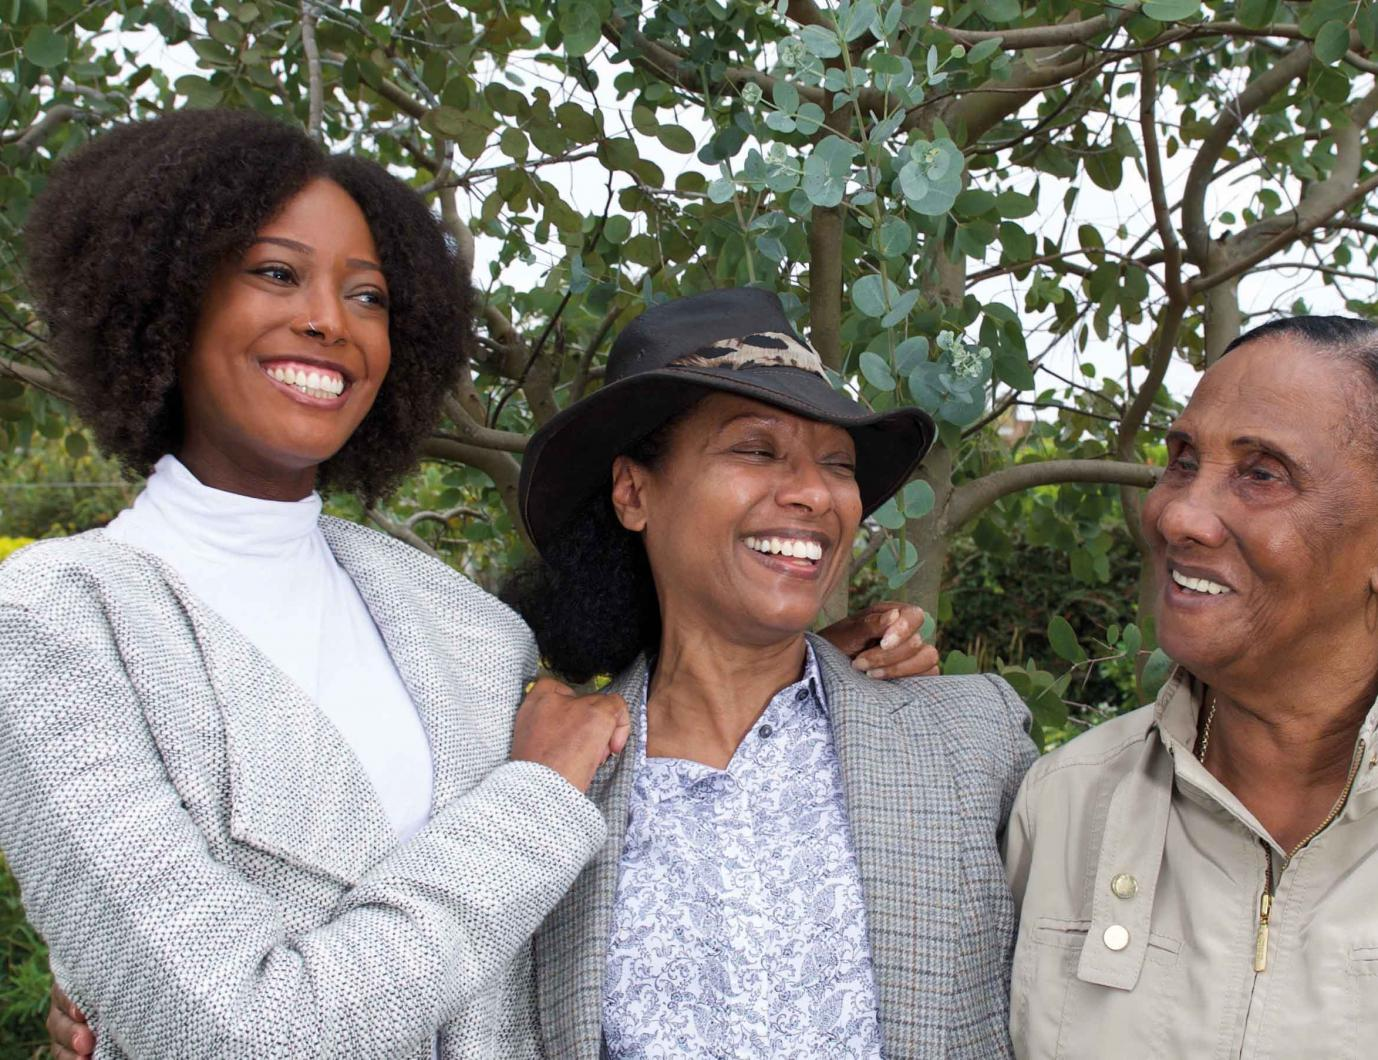 Woman with scleroderma looking very happy with family